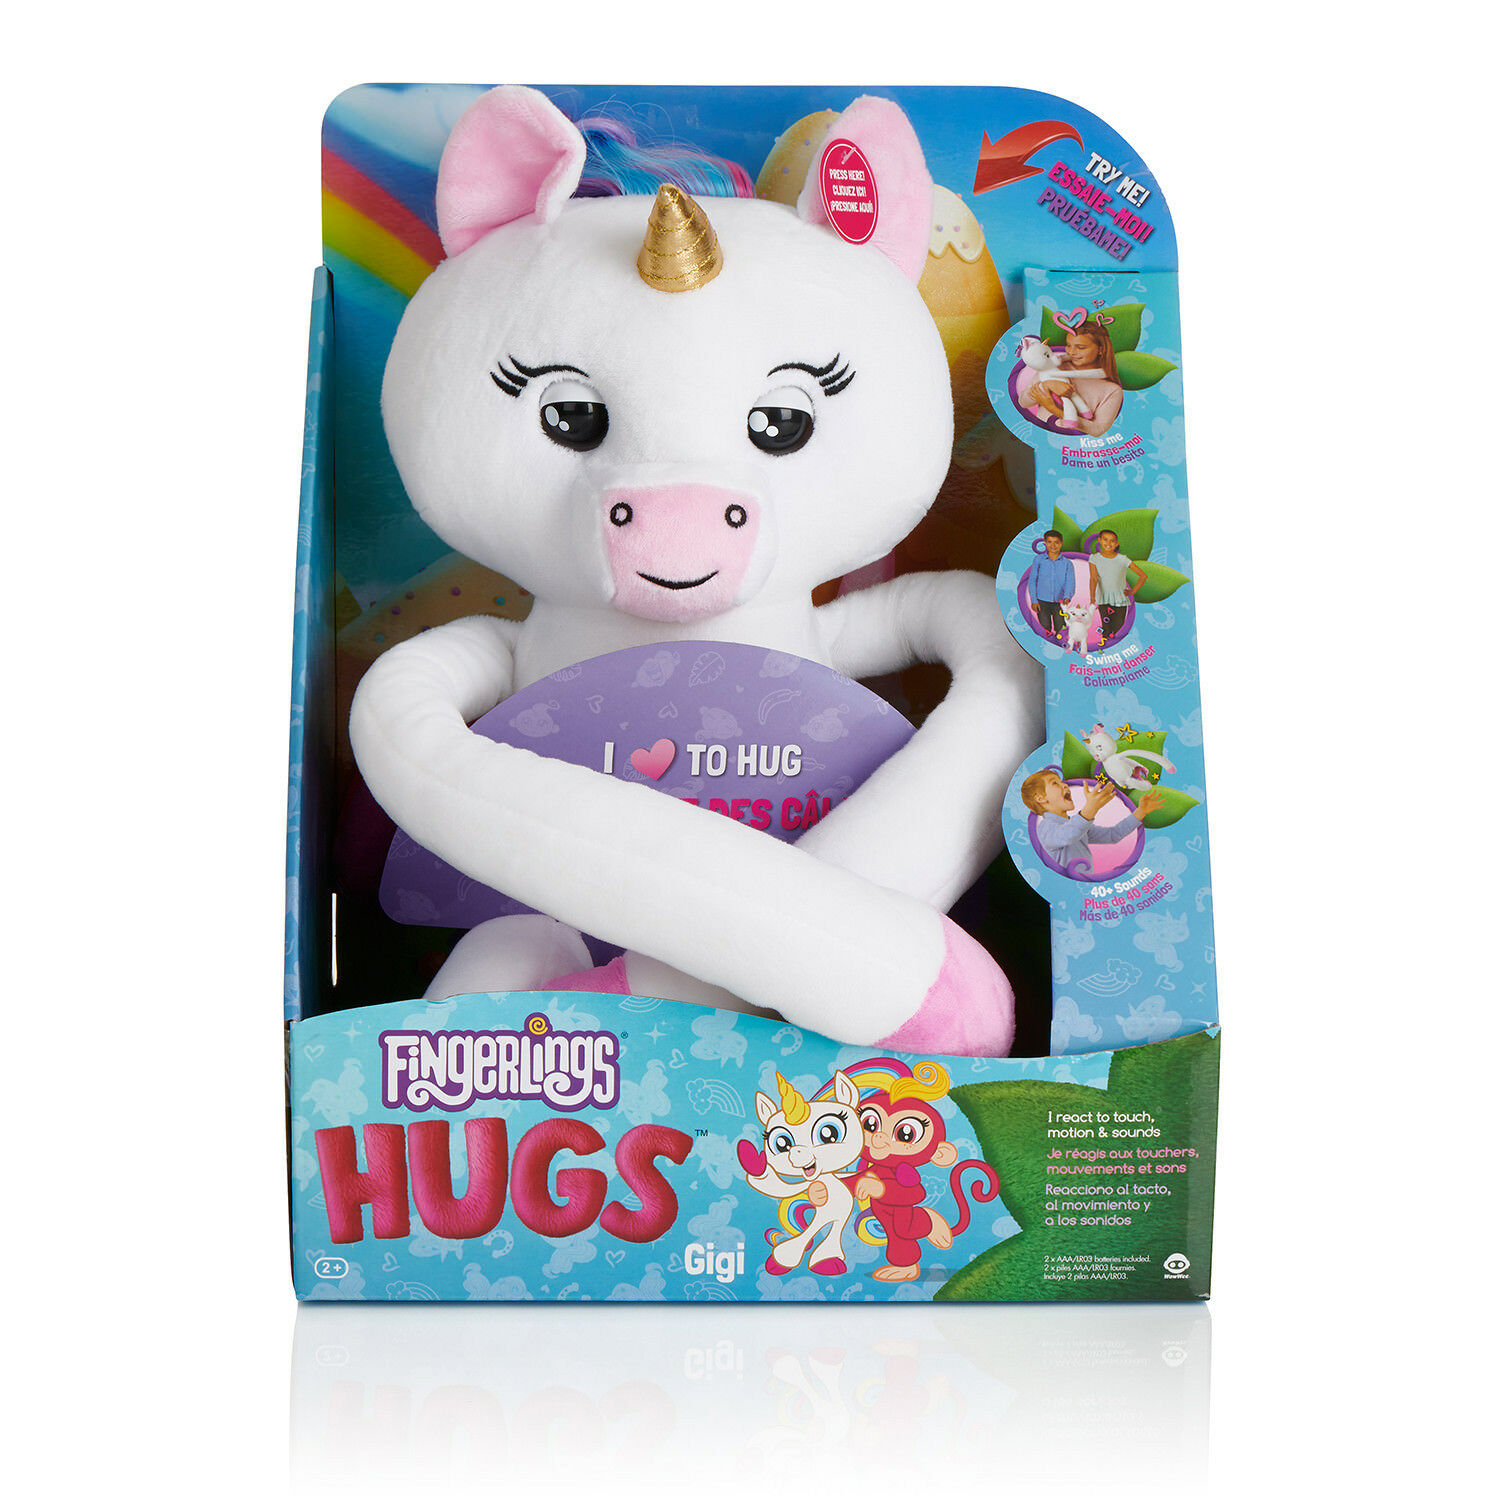 WowWee Fingerlings HUGS Gigi White Advanced Interactive Plus